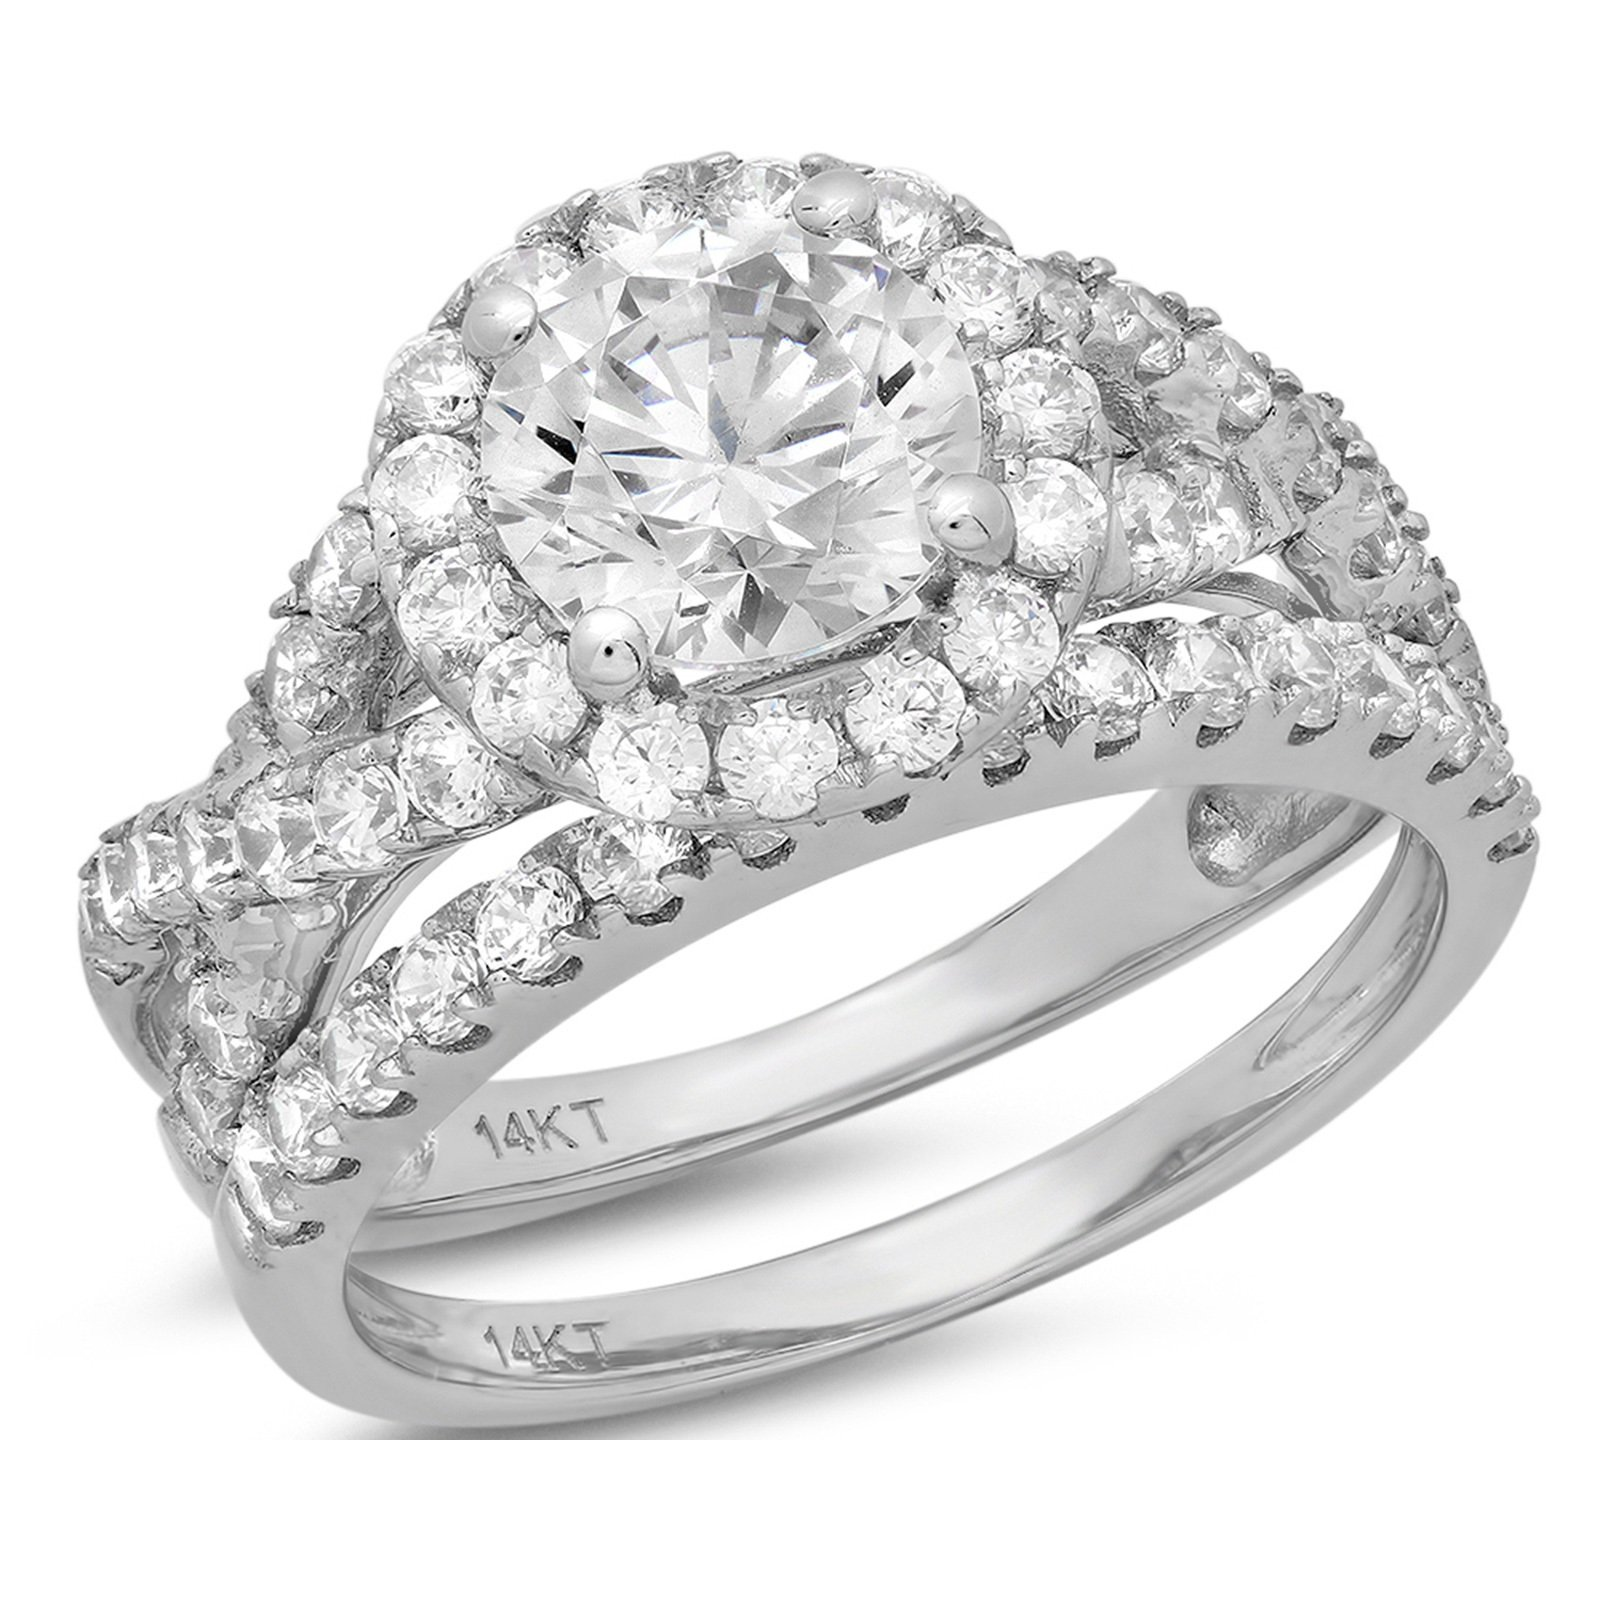 Clara Pucci 2.40 CT Round Cut CZ Pave Halo Bridal Engagement Wedding Ring Band Set 14k White Gold, Size 11